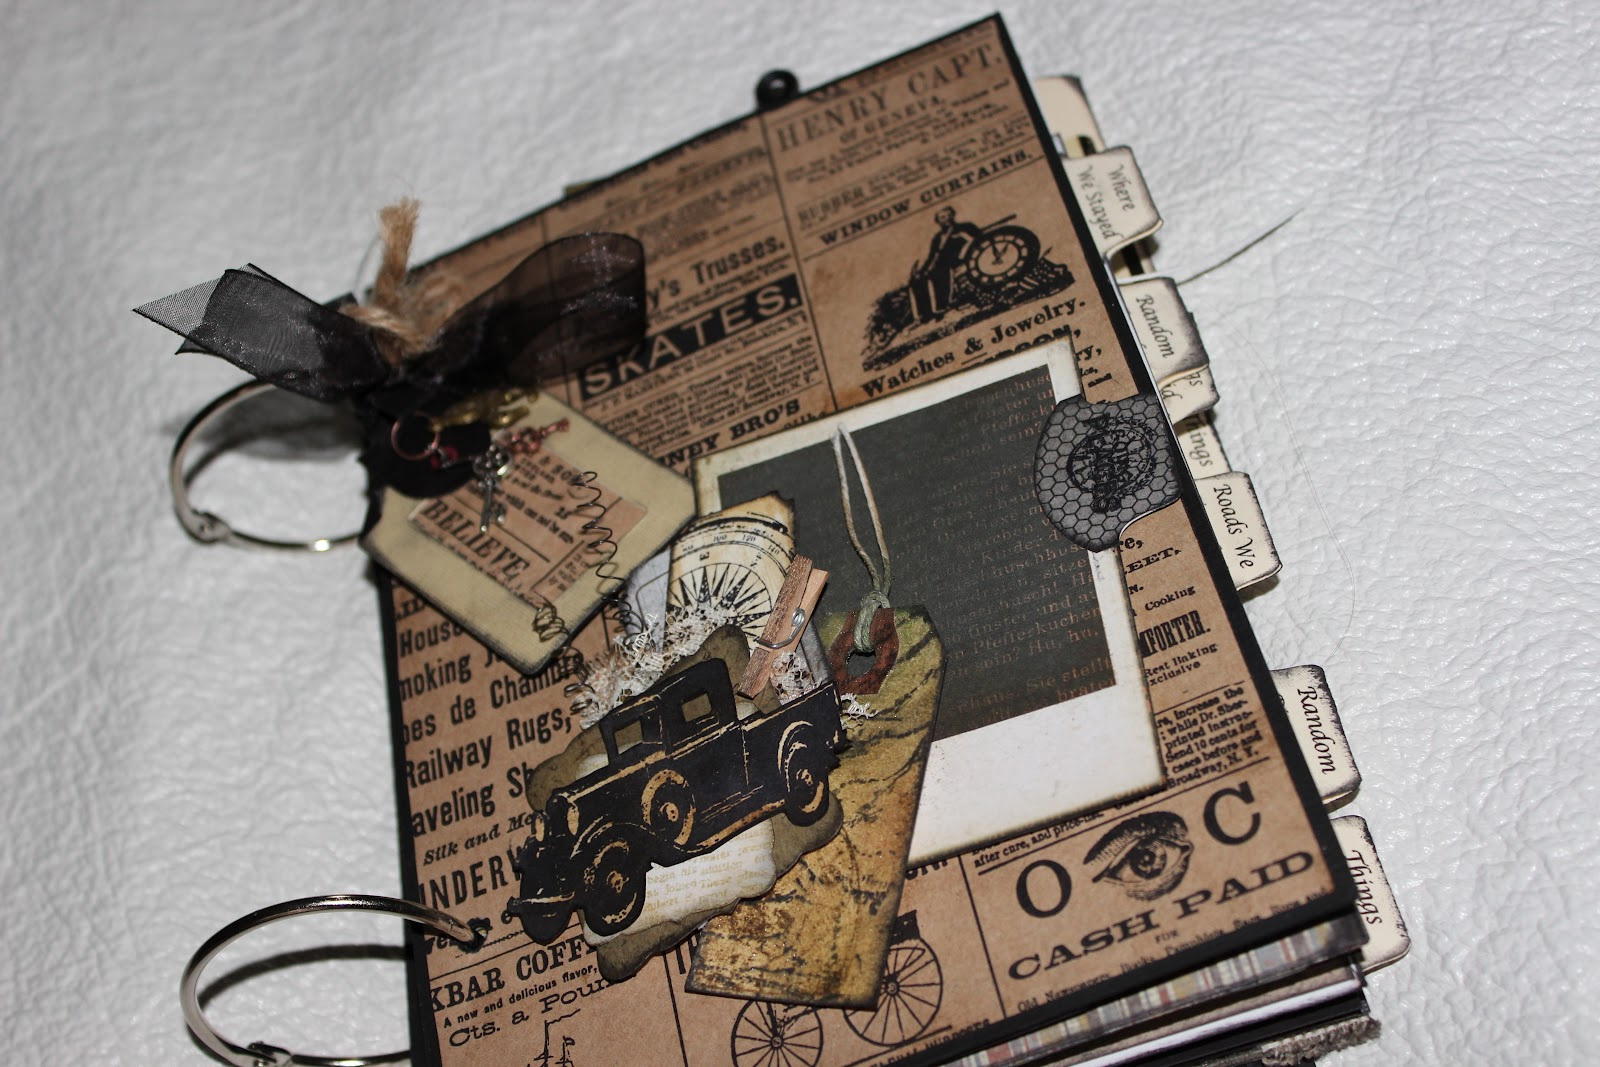 How to scrapbook a road trip - I Will Also Be Posting Pictures Of The Junk Journal I Made For My Own Family To Take On Our Next Road Trip That One Is Kind Of A Junk Journal